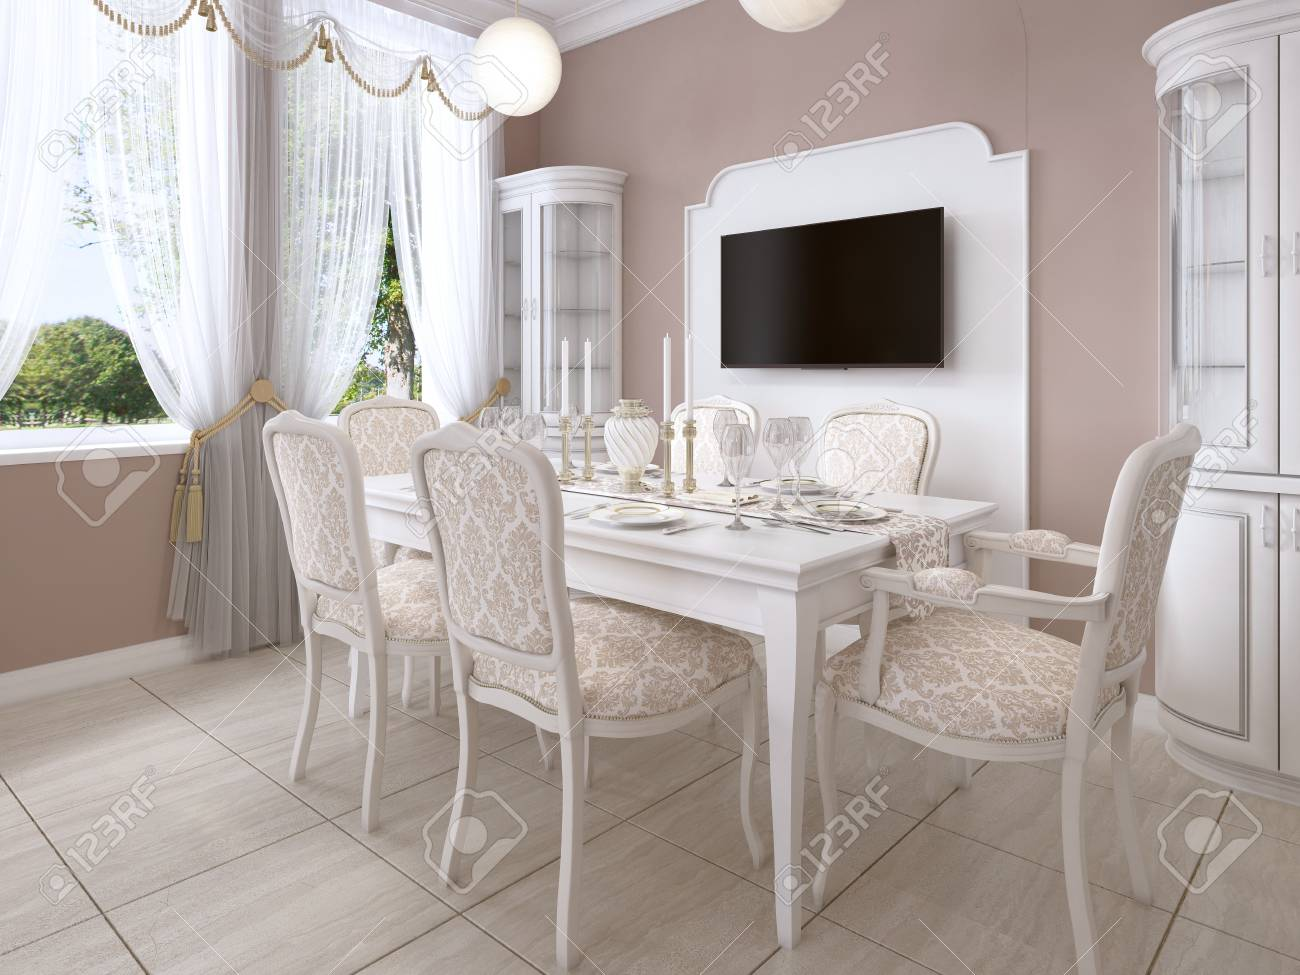 Dining Room With White Table And Chairs For Six People Two Sideboards A TV